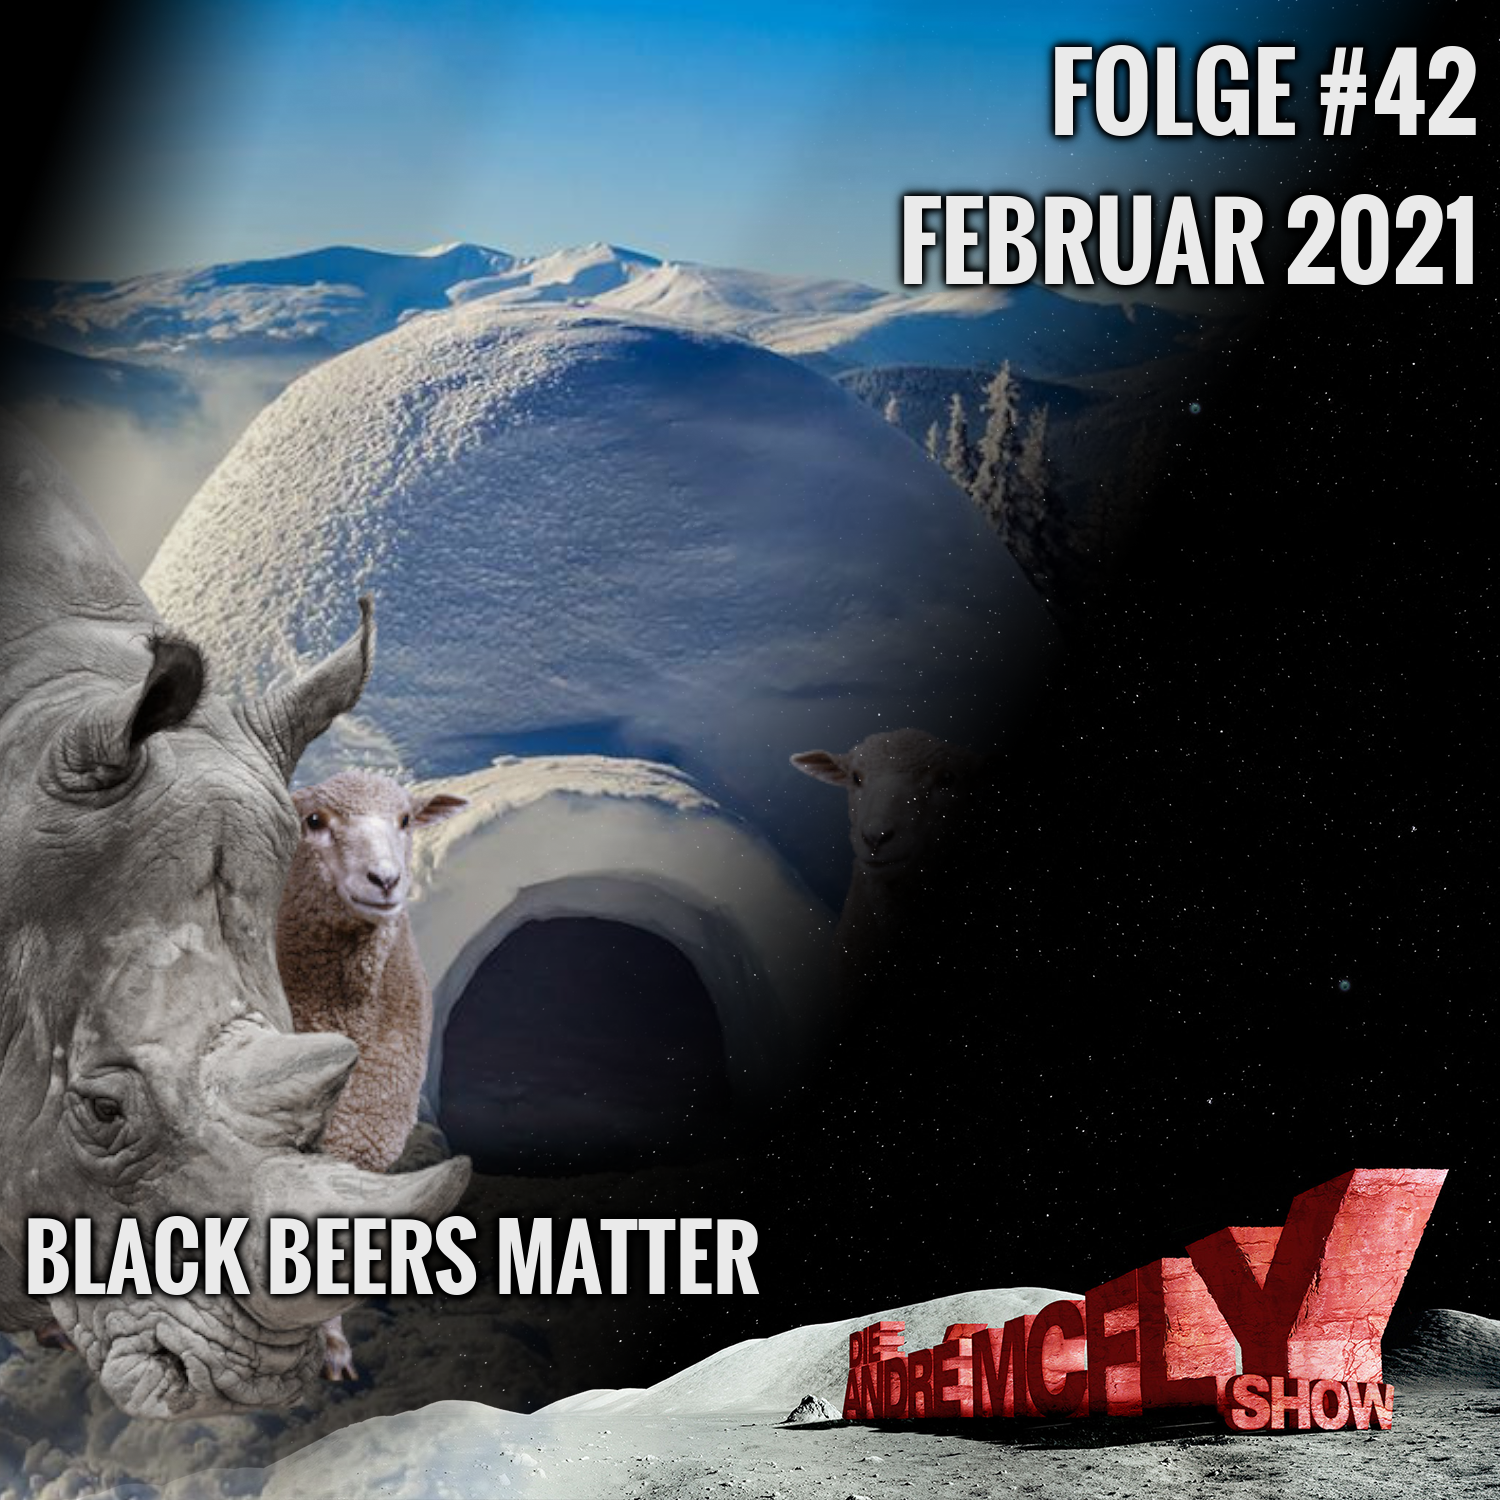 Die André McFly Show #42   Black Beers Matter